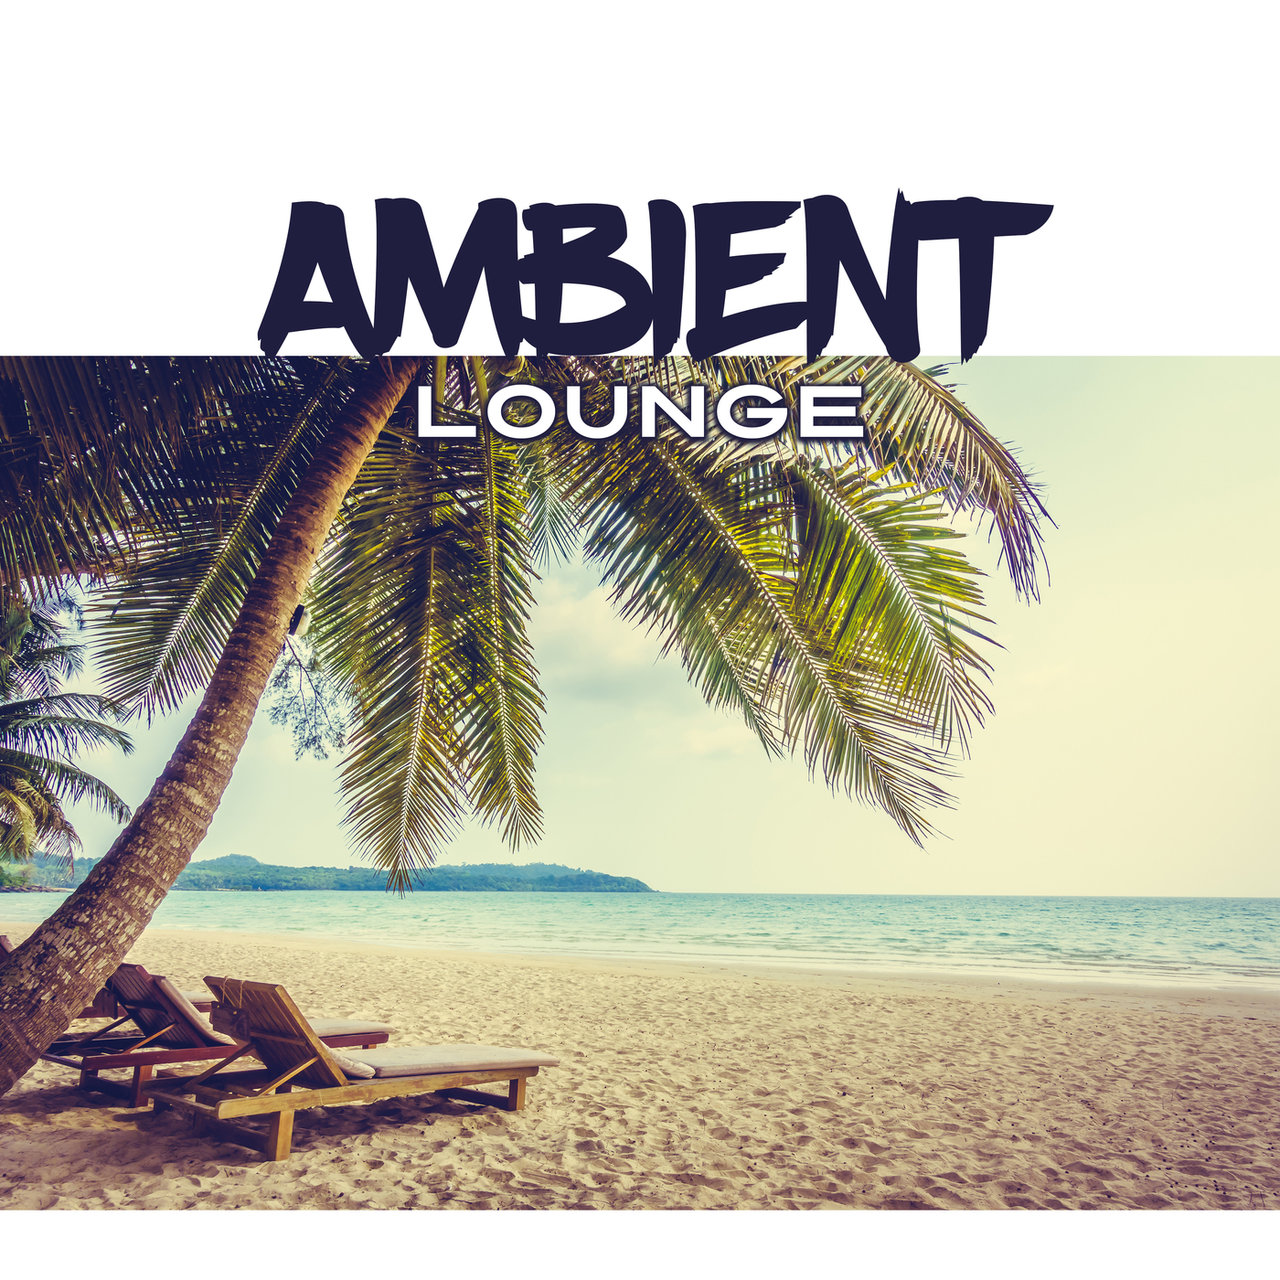 Ambient Lounge tidal listen to ambient lounge on tidal